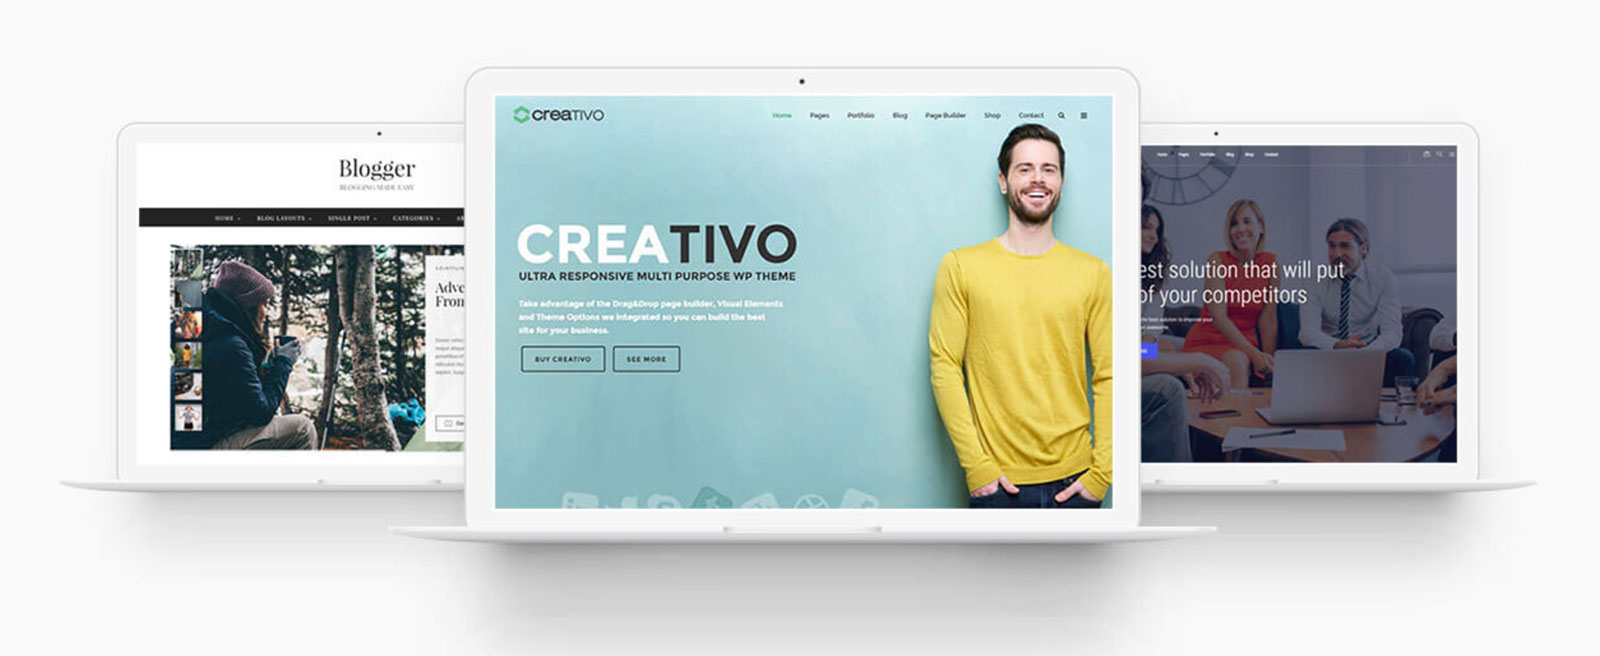 Creativo WordPress Theme Review